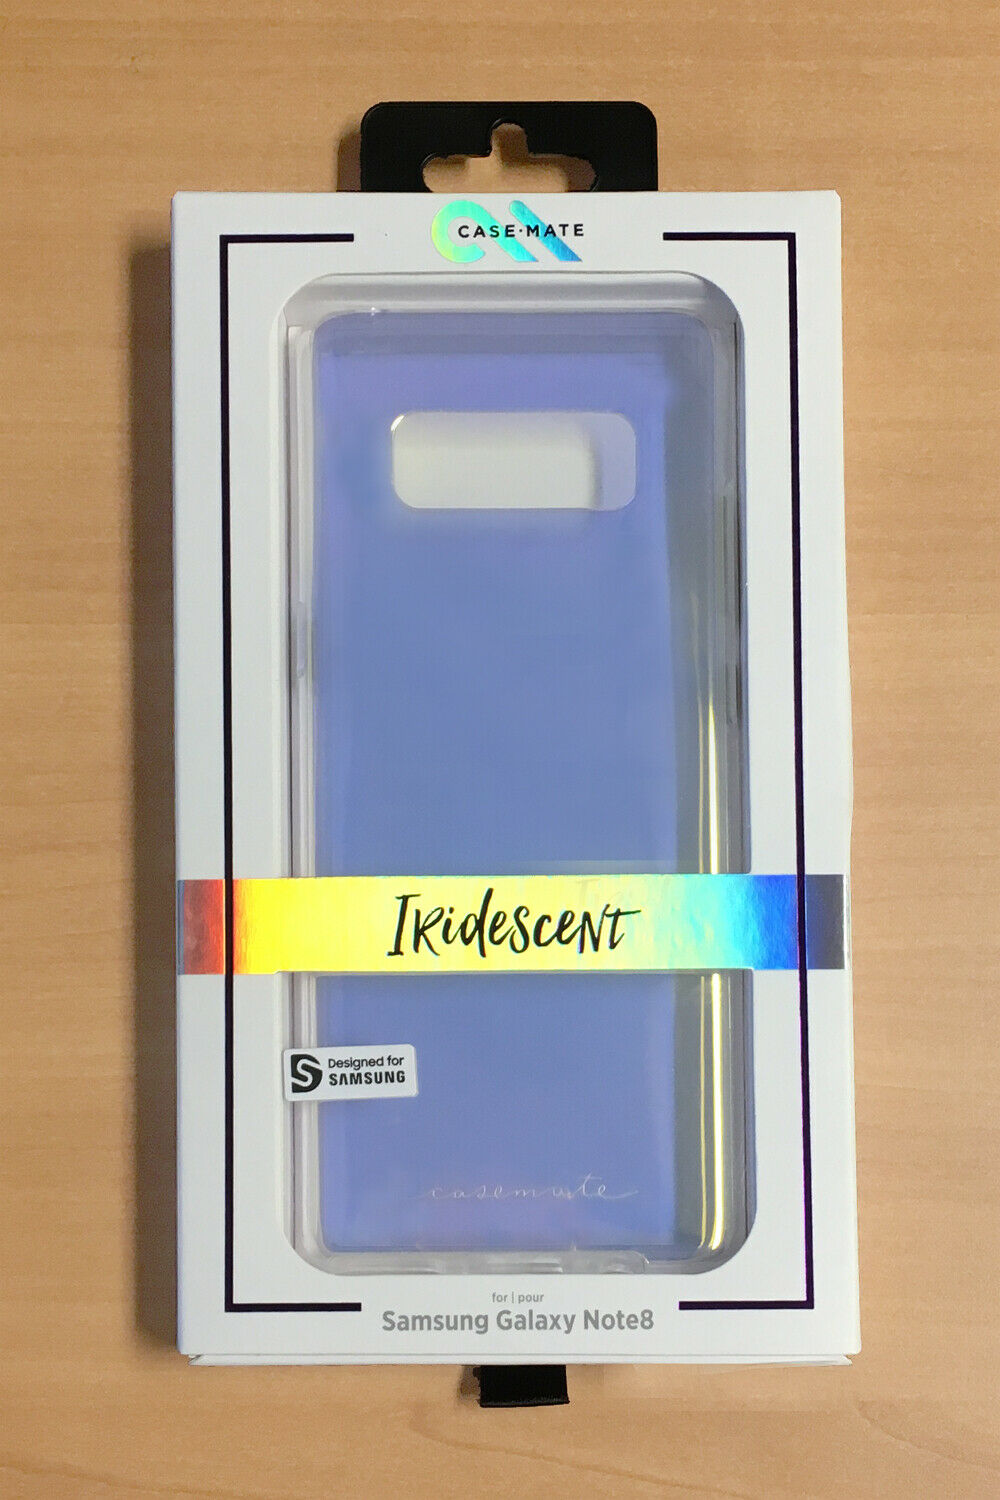 case mate iridescent phone case for samsung